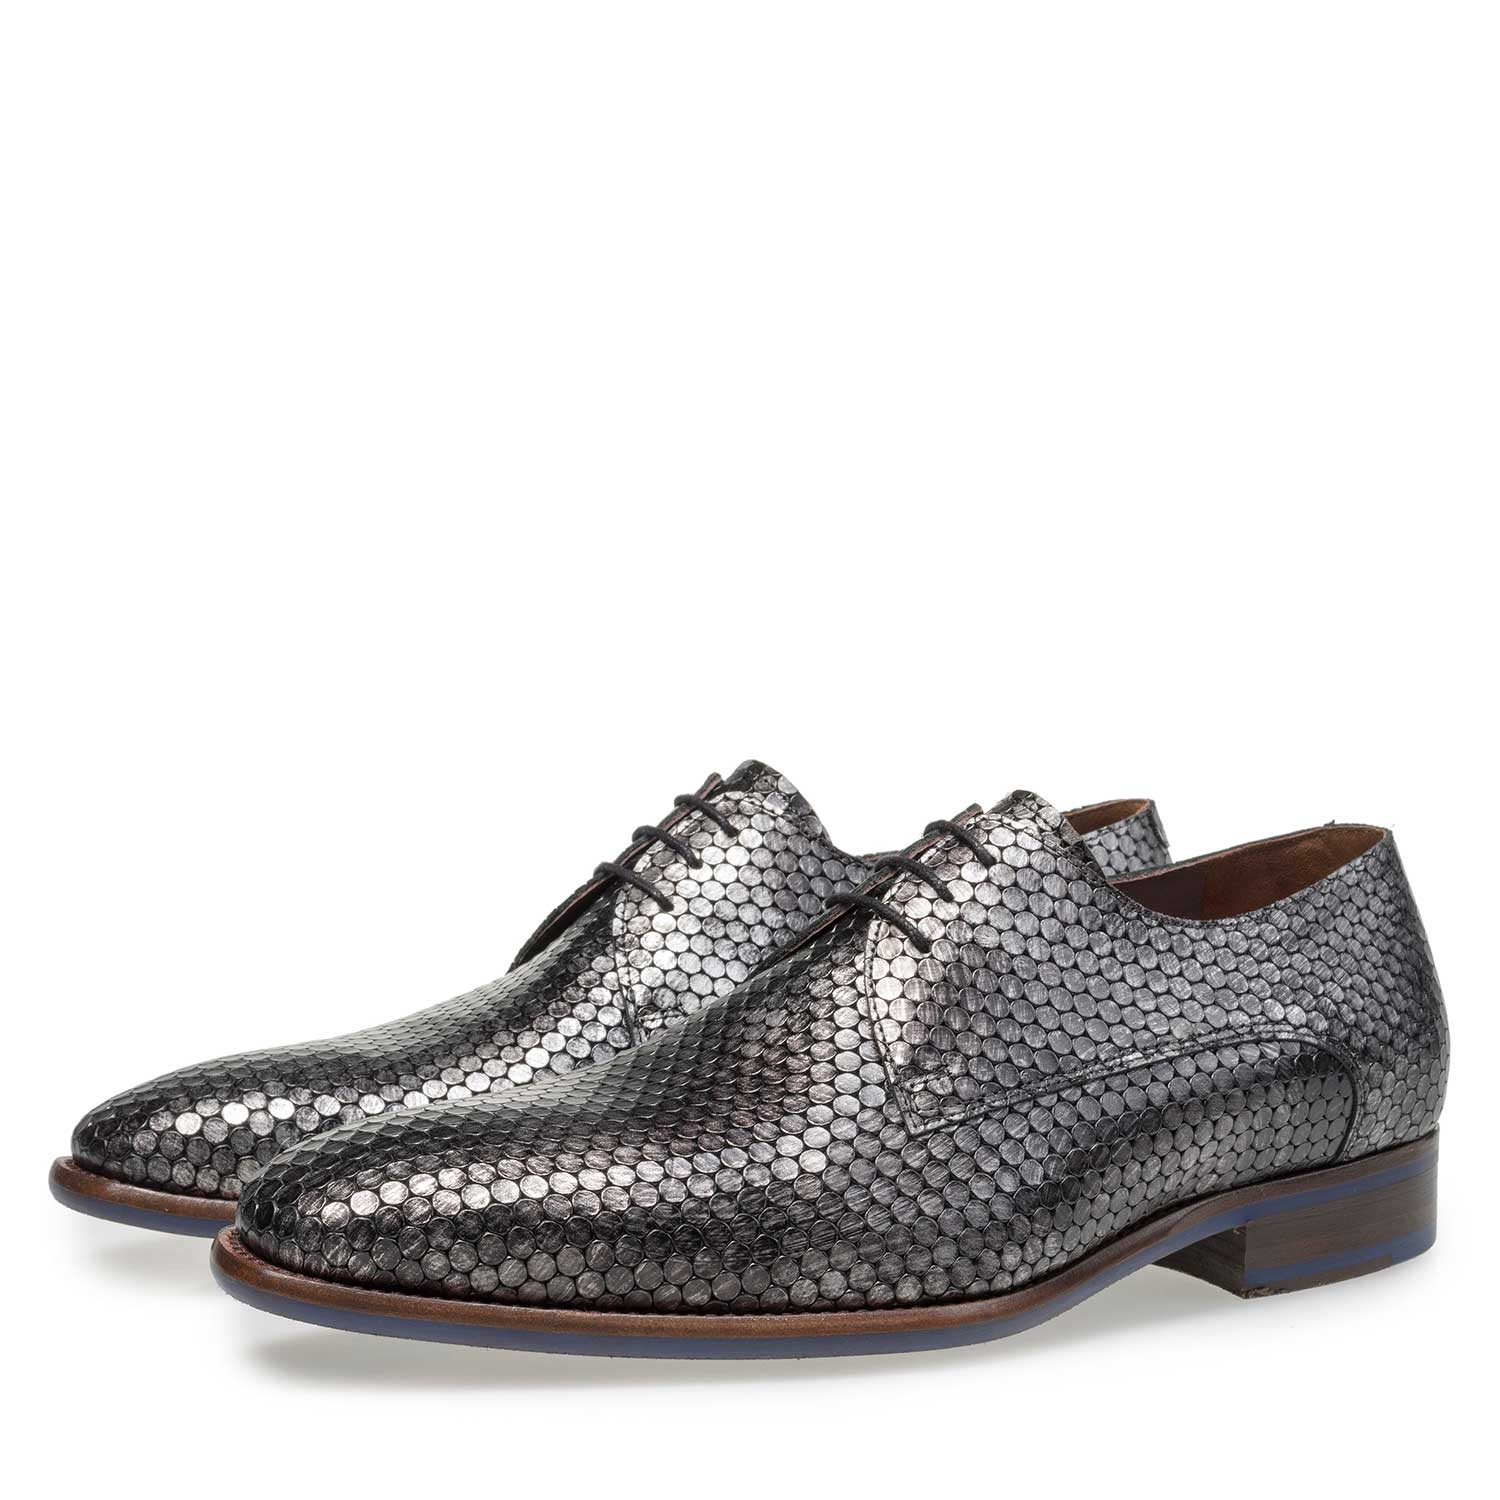 18080/00 - Grey calf leather lace shoe with metallic print